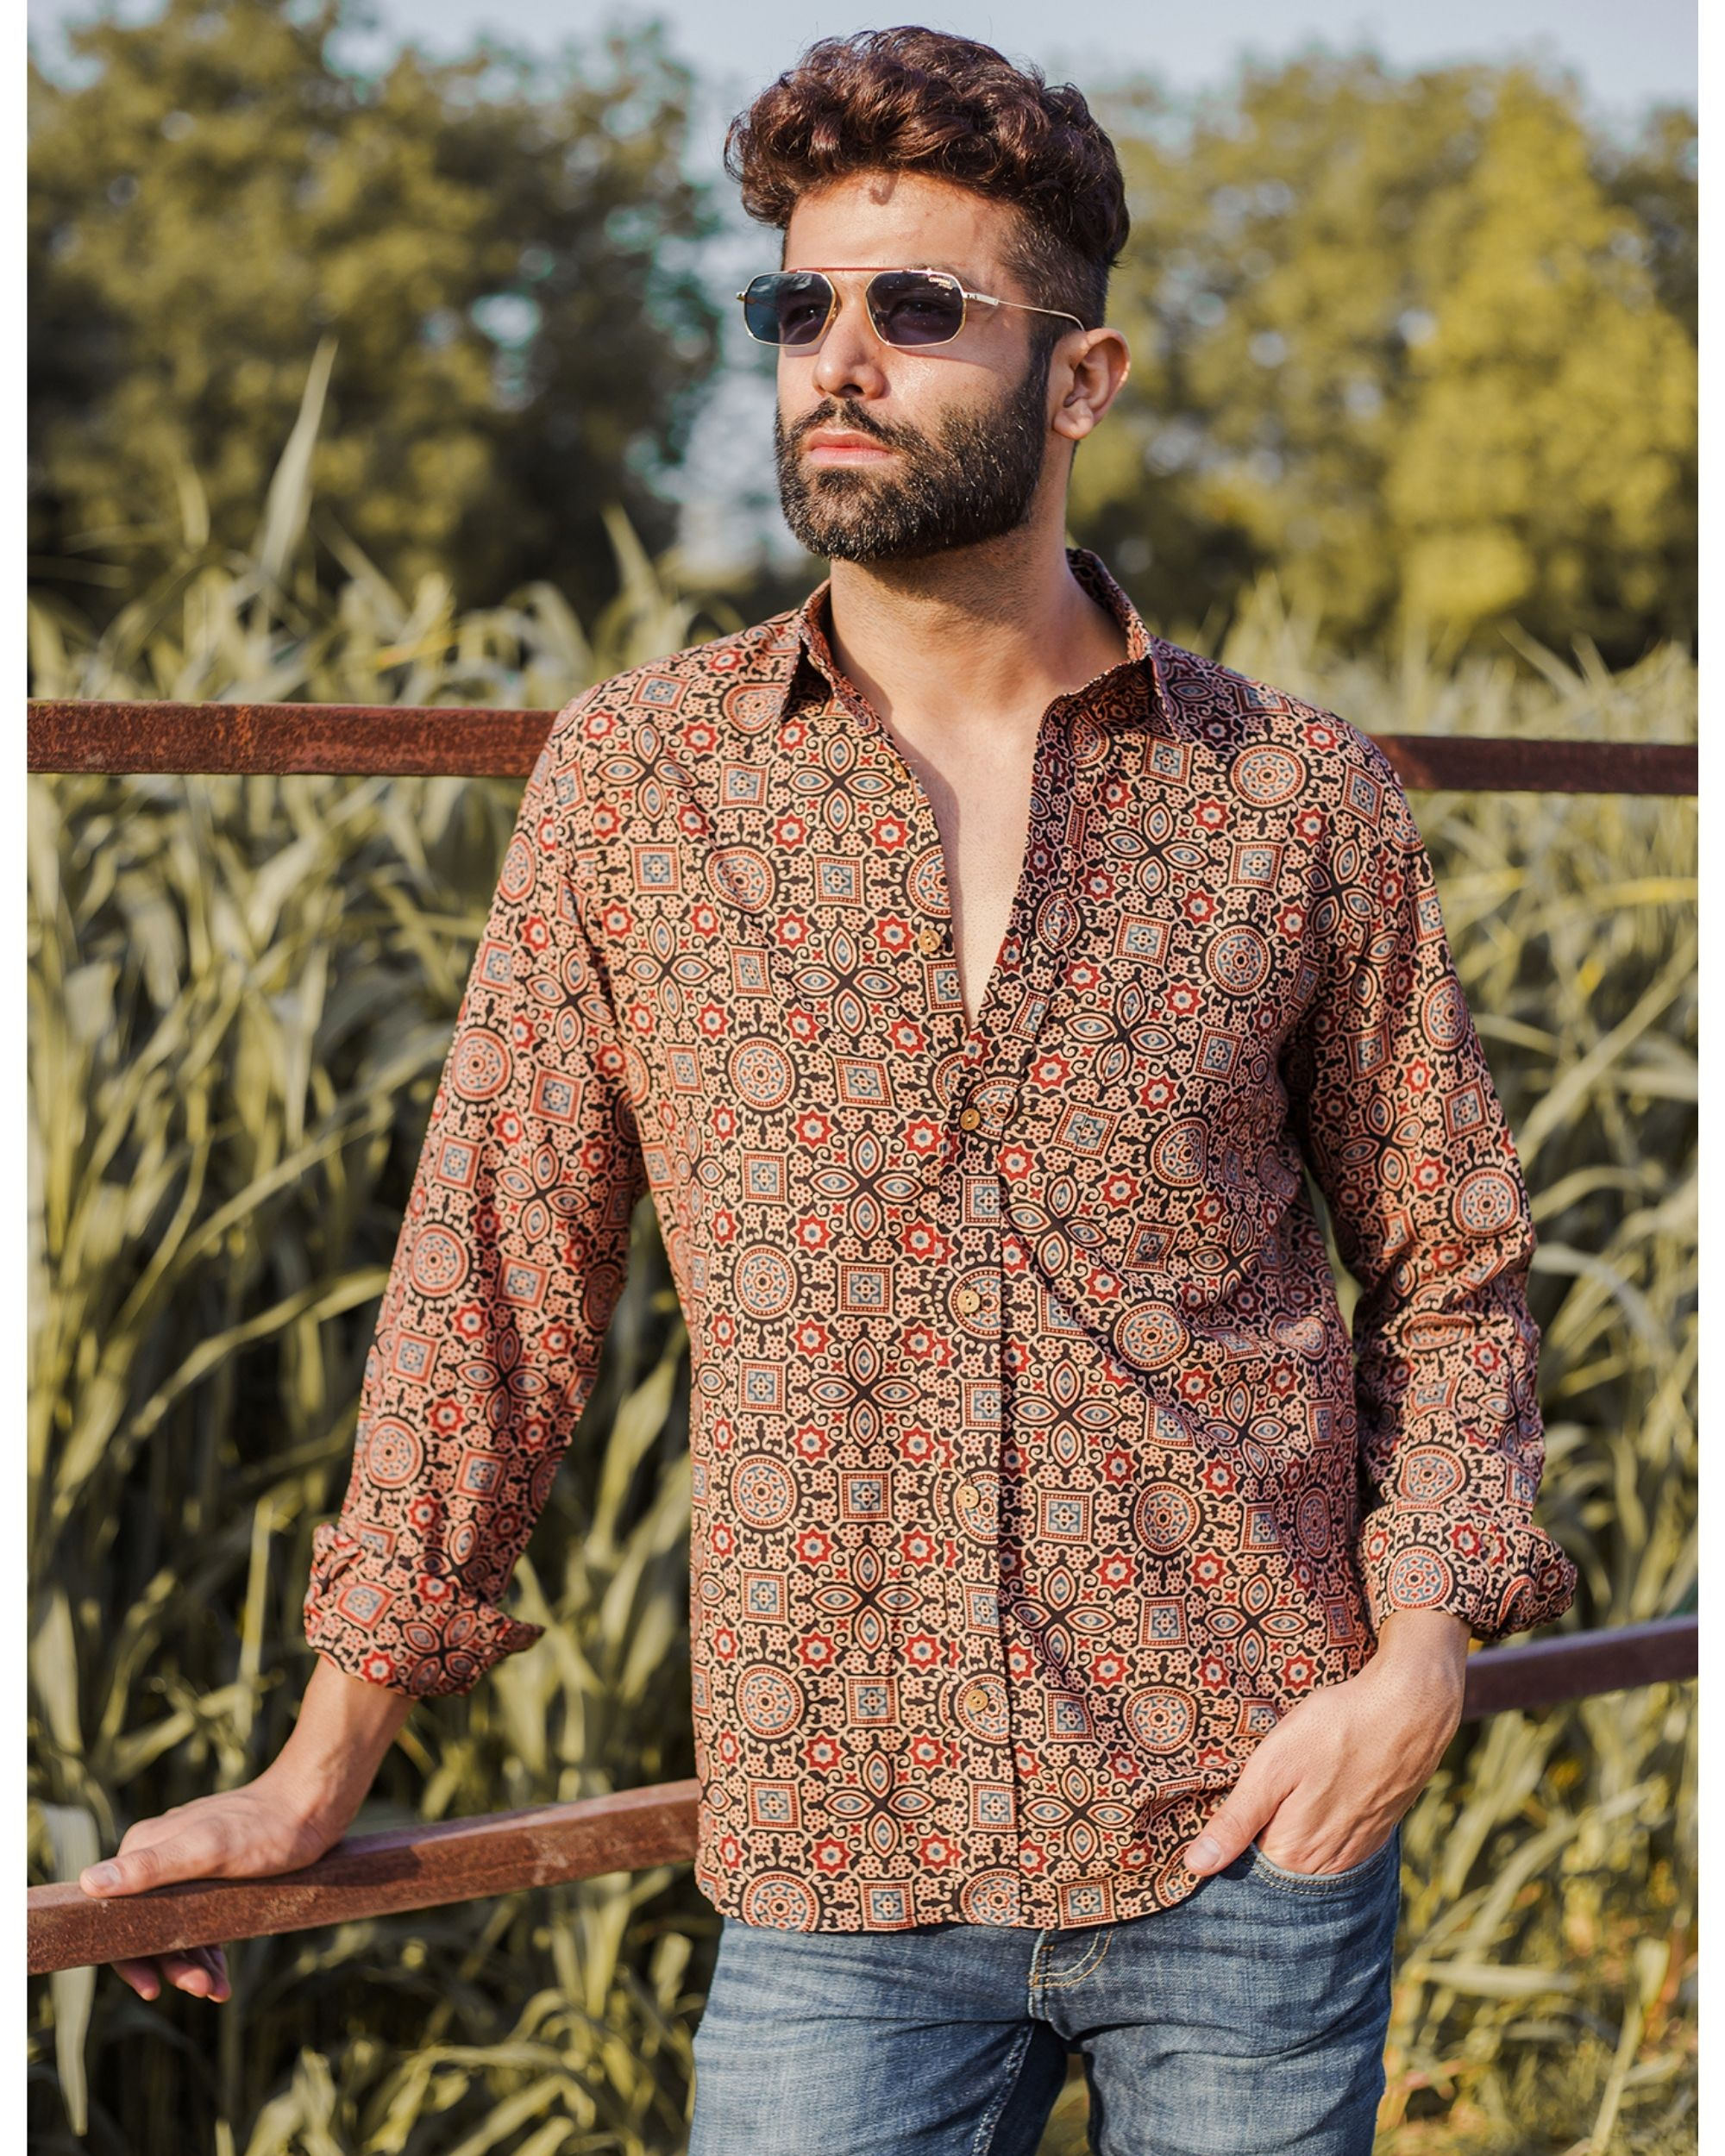 Brown and red ajrakh printed shirt